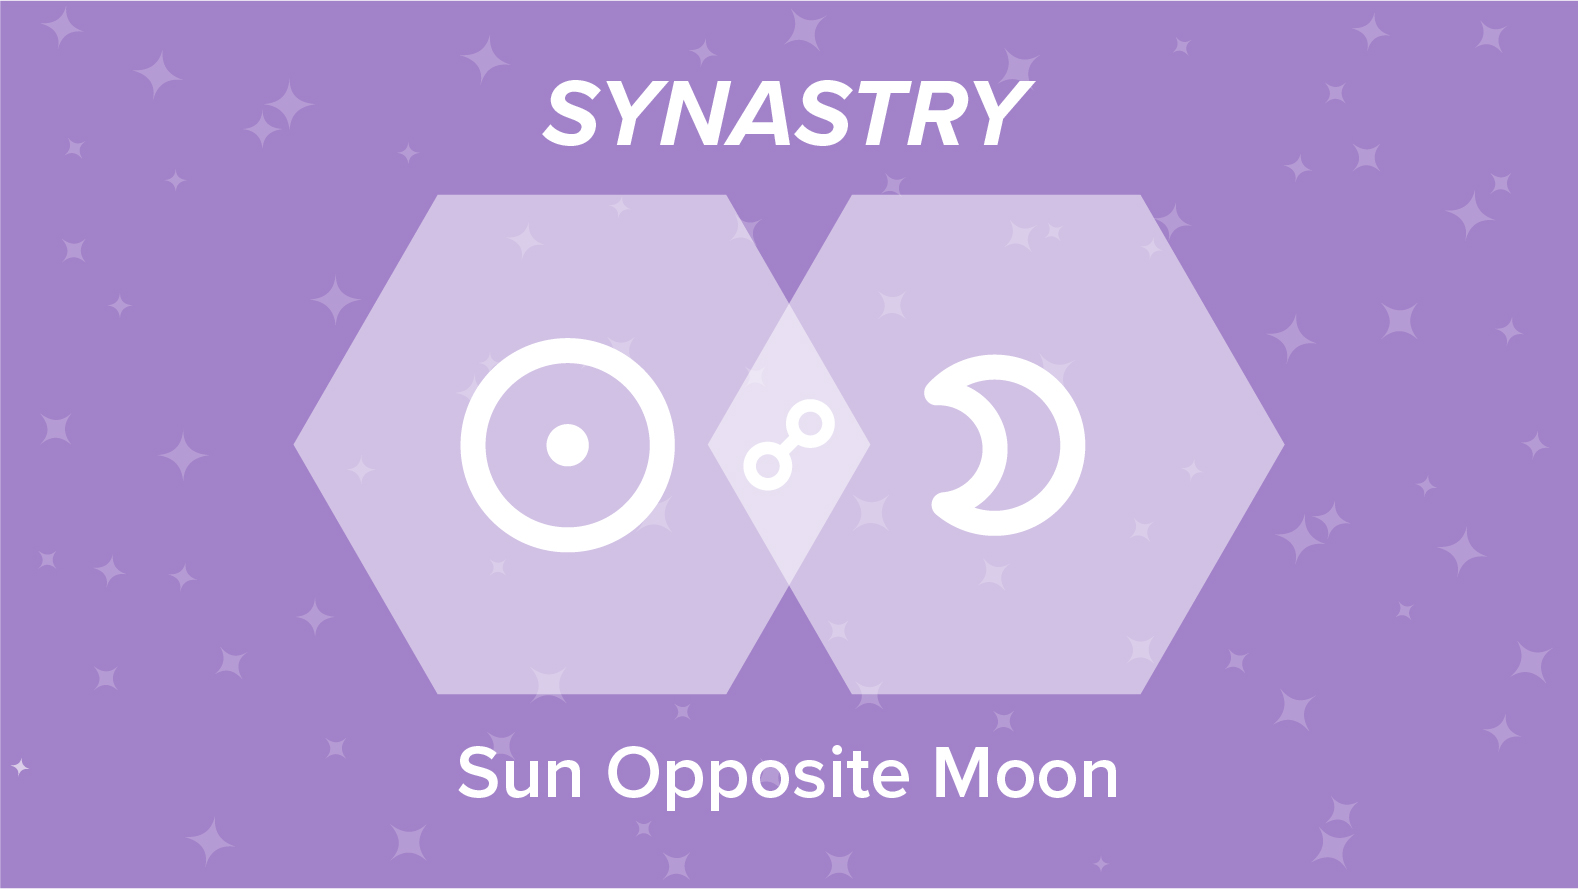 Sun Opposite Moon Synastry: Relationships and Friendships Explained